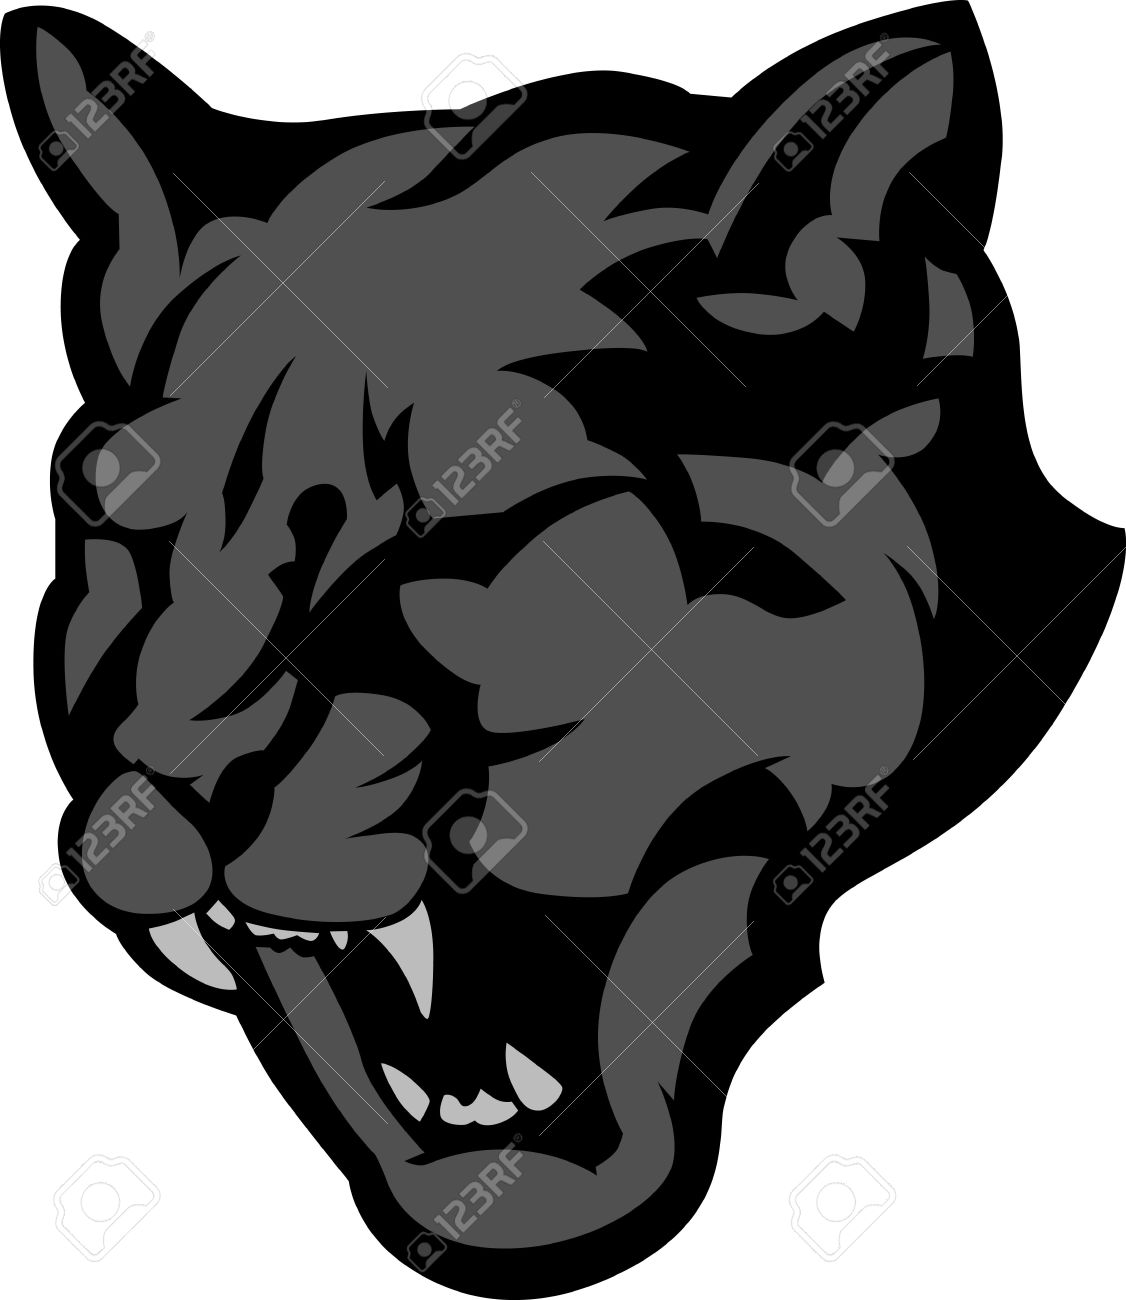 Graphic Mascot Image Of A Black Panther Head Royalty Free Cliparts.